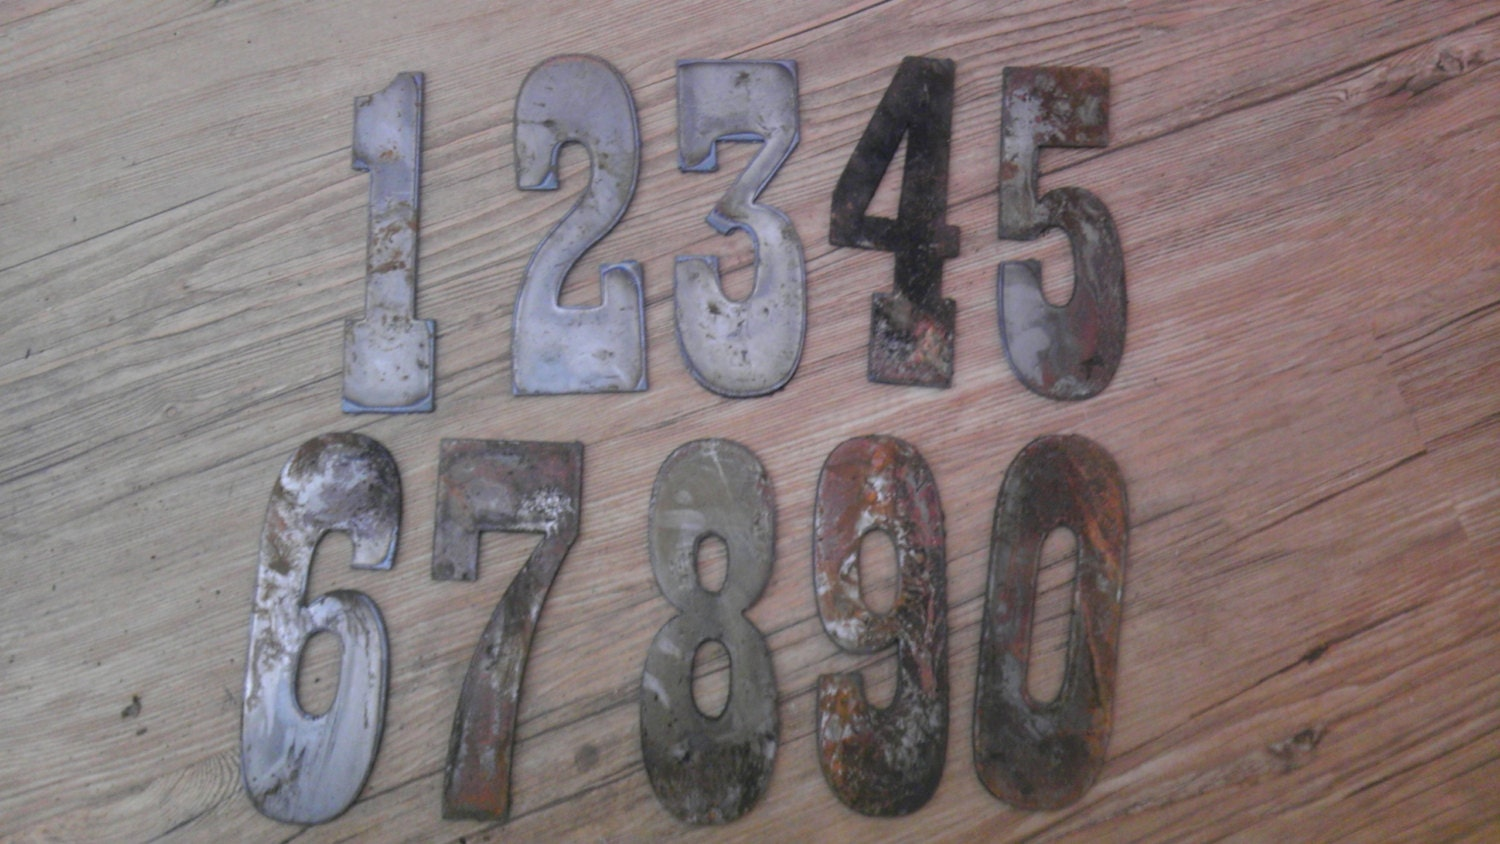 6 Inch Metal Letters 6 Inch Letters Numbers Per Number Rusty Vintage Western Style